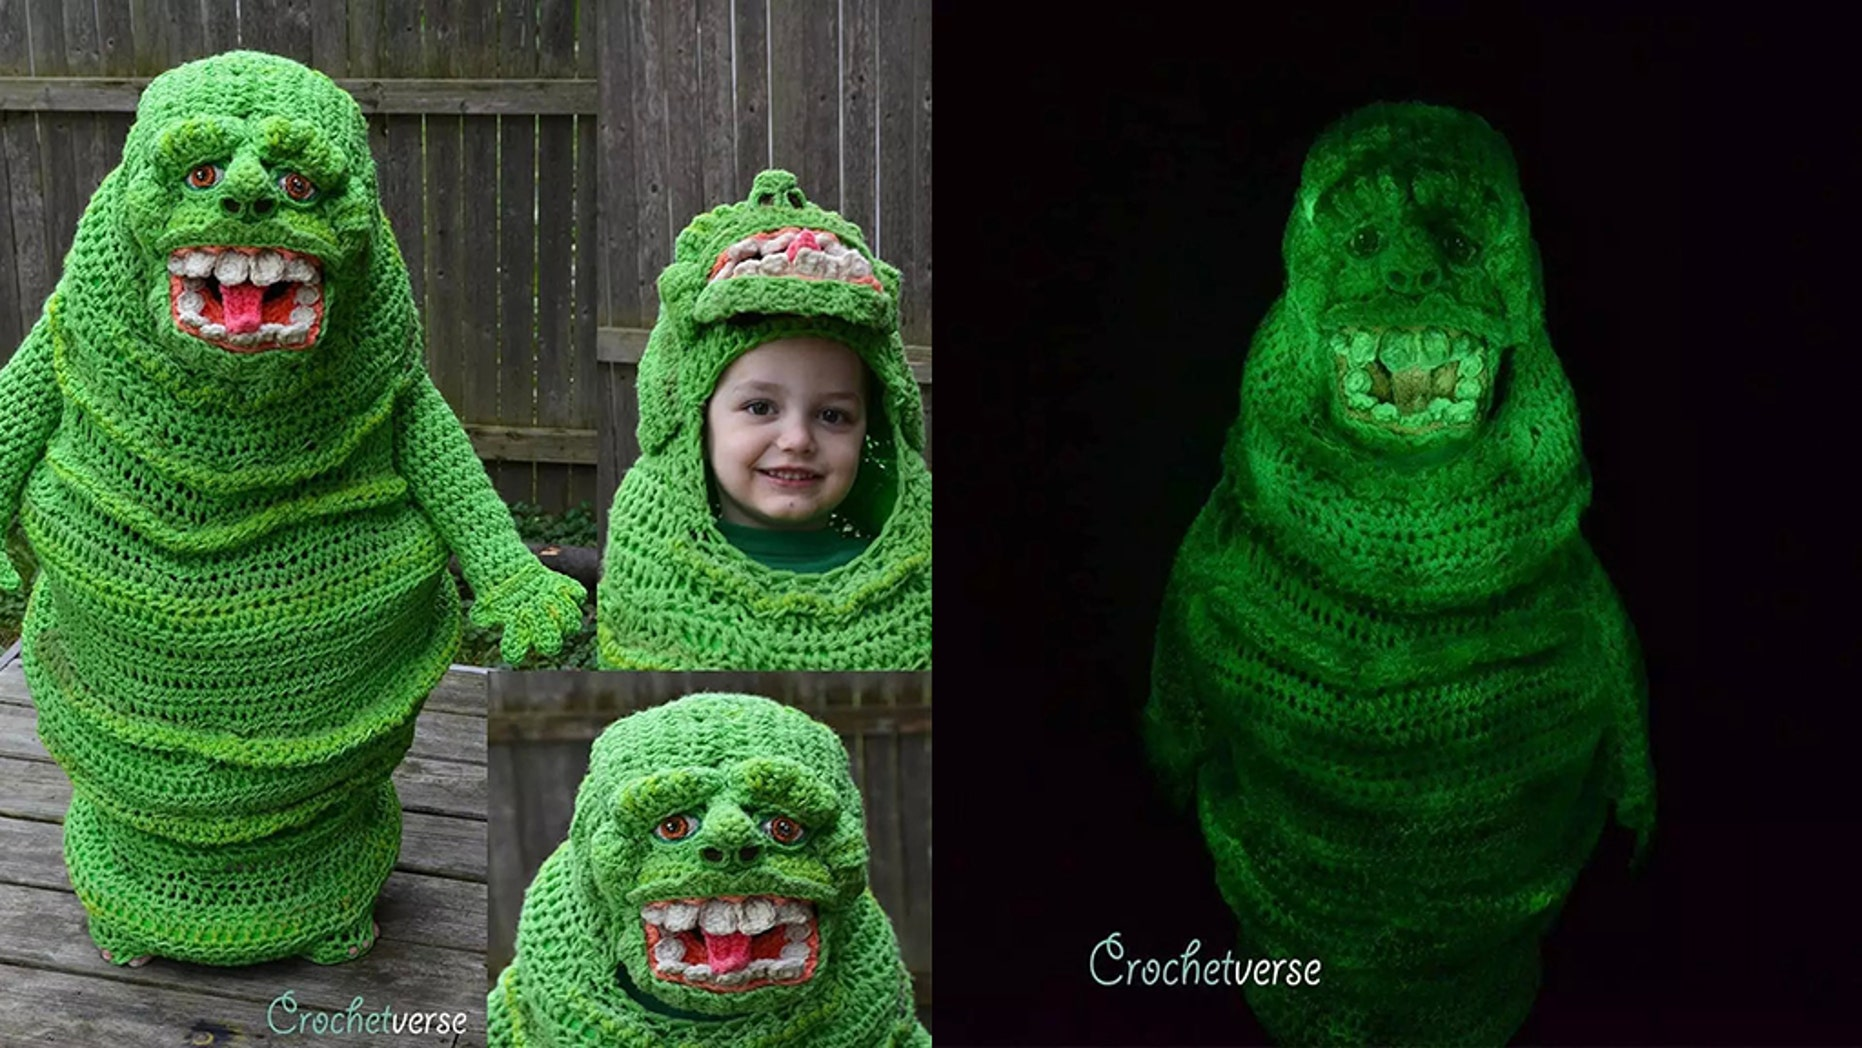 A woman has gone viral for her intricate children's costumes.